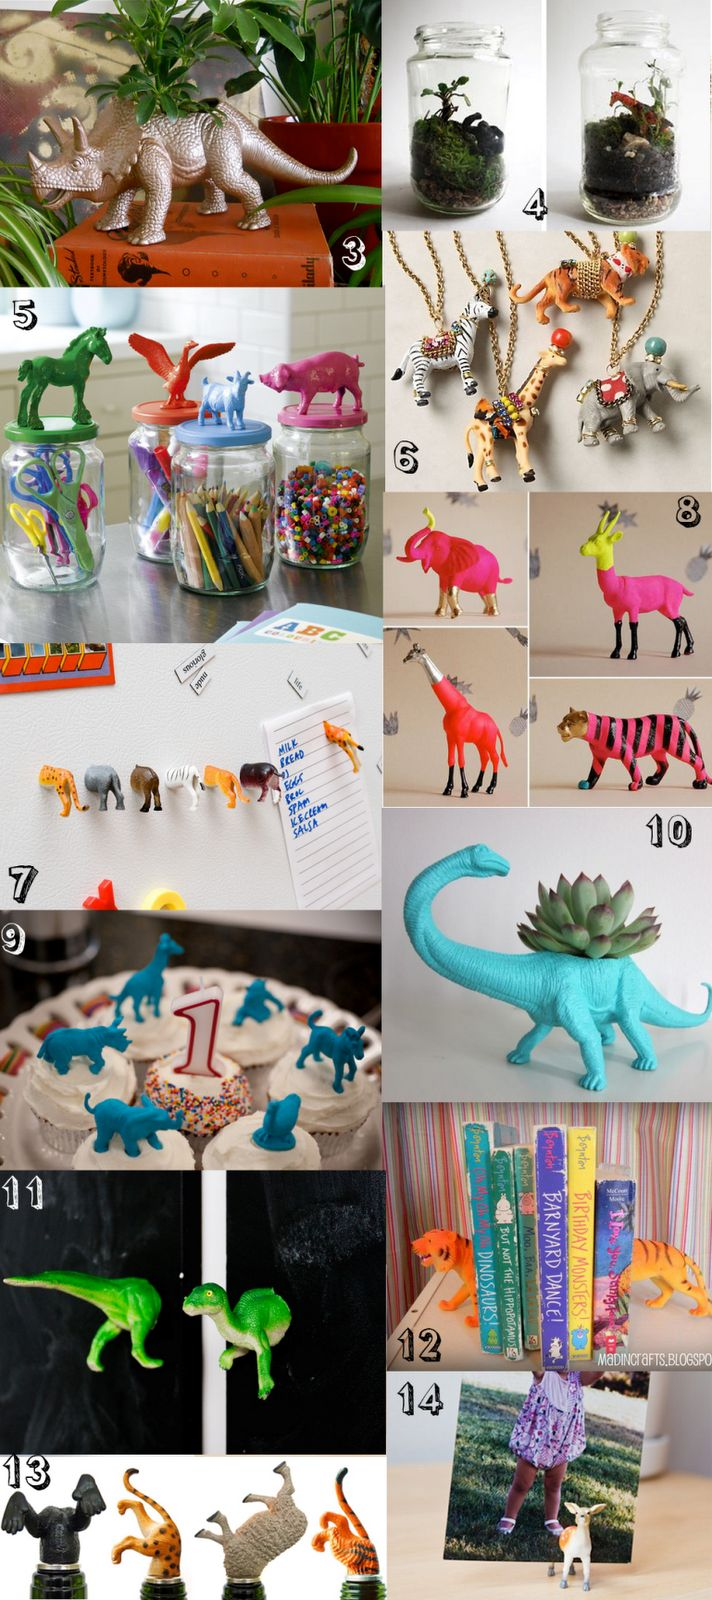 Sixteen fun ideas for repurposing your well-loved plastic animals.